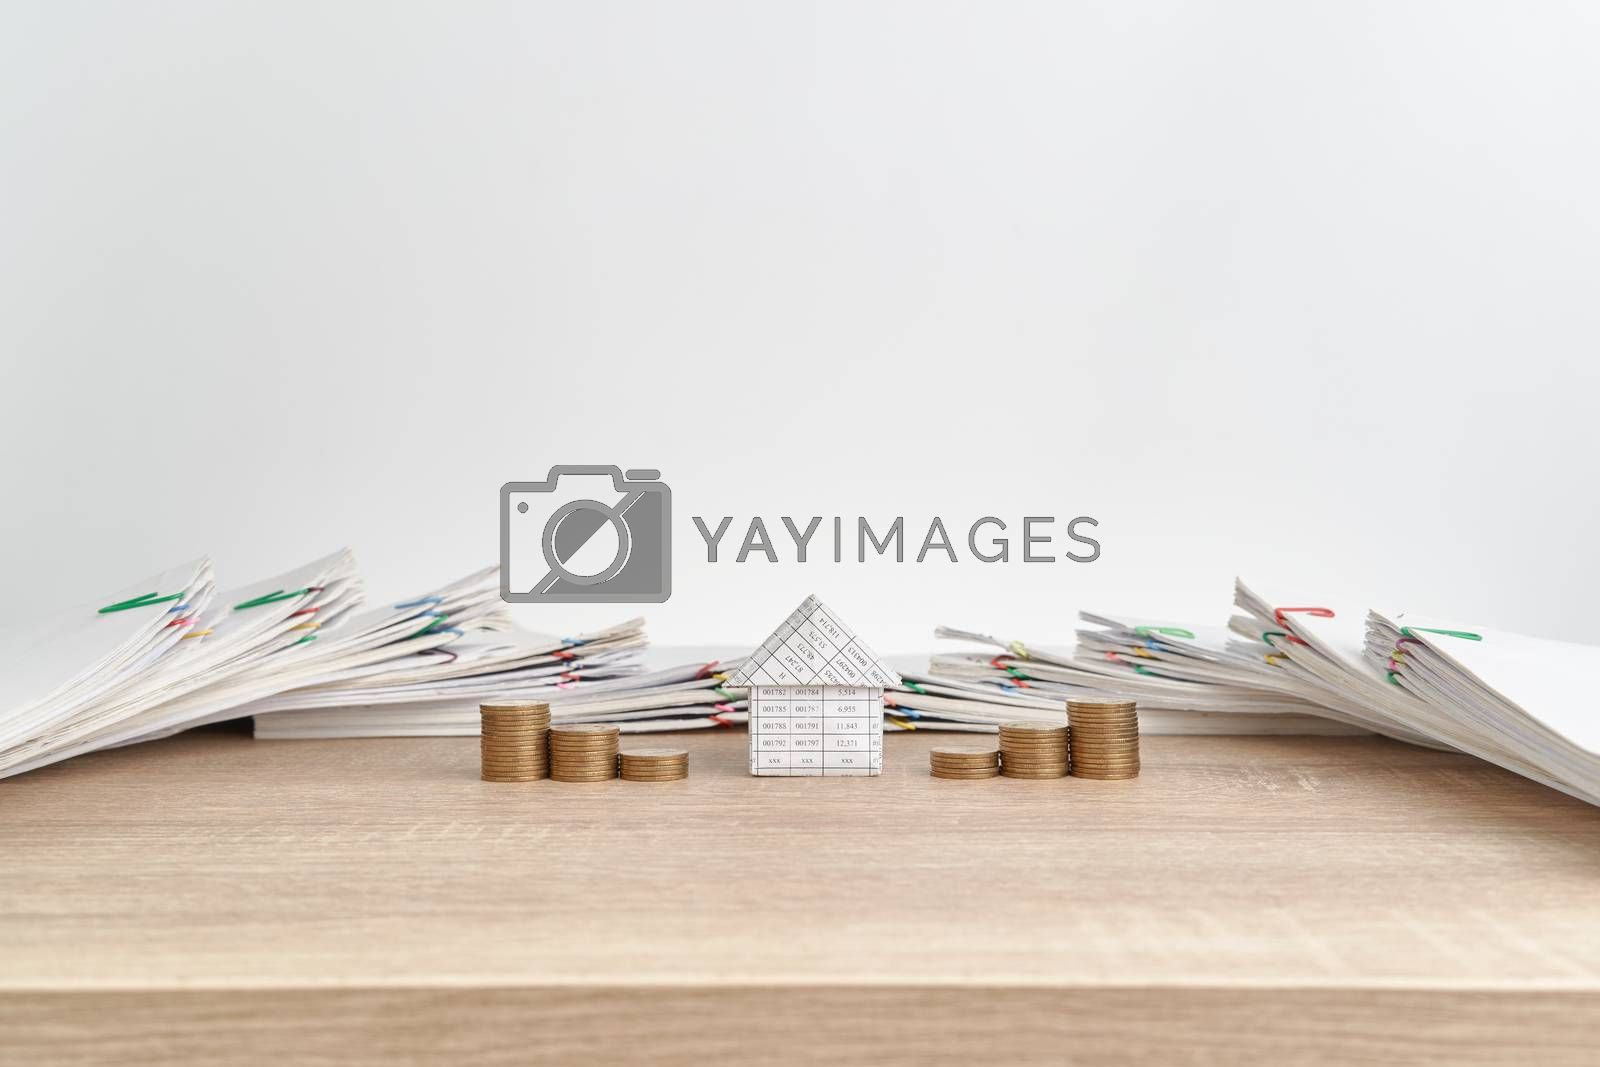 Royalty free image of House between step pile of gold coins on wooden table by eaglesky